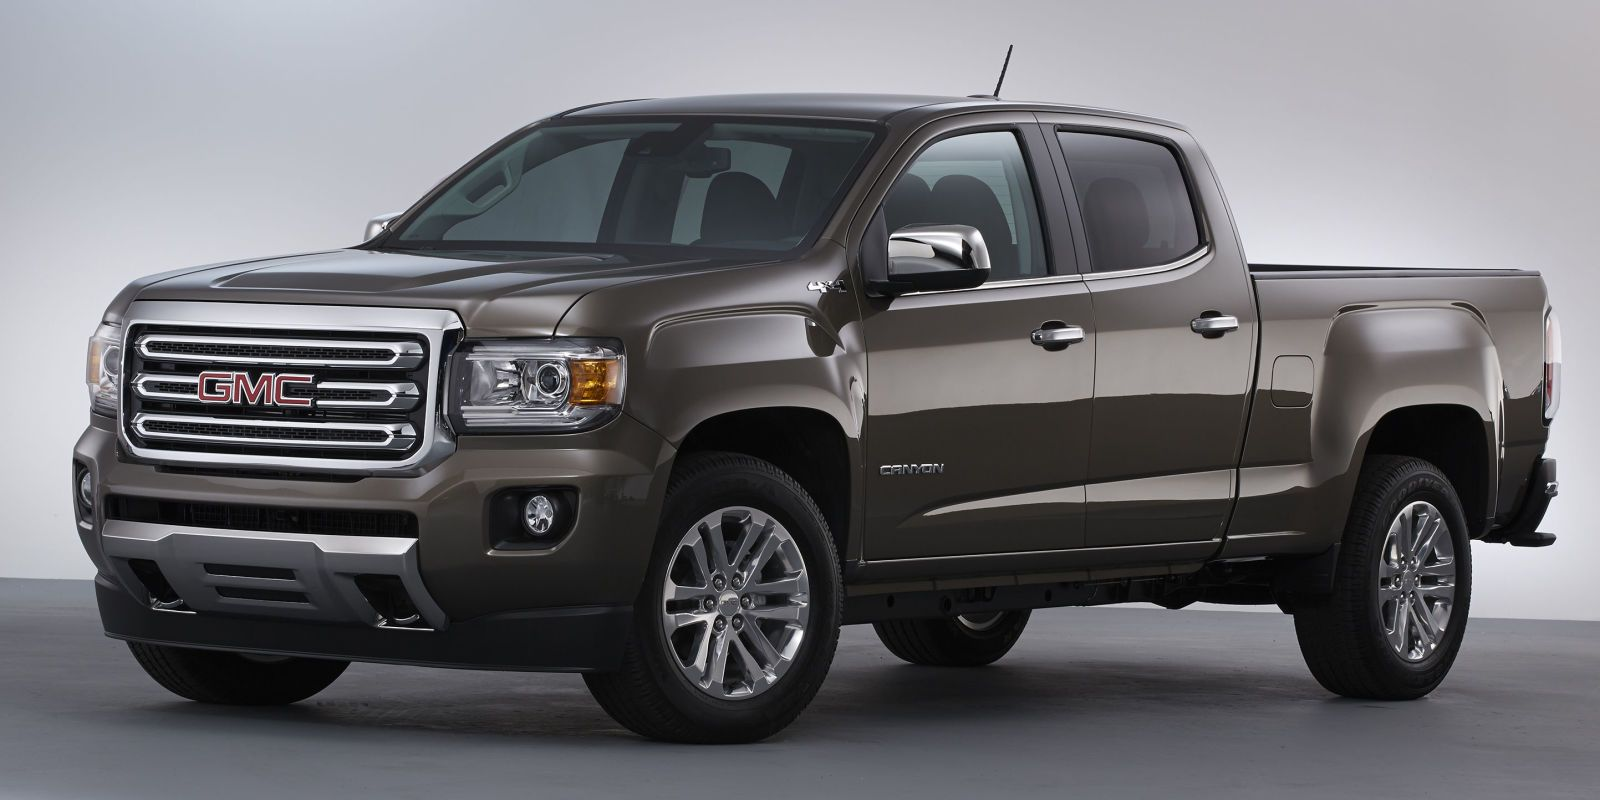 2015 gmc canyon the compact truck is back compact. Black Bedroom Furniture Sets. Home Design Ideas